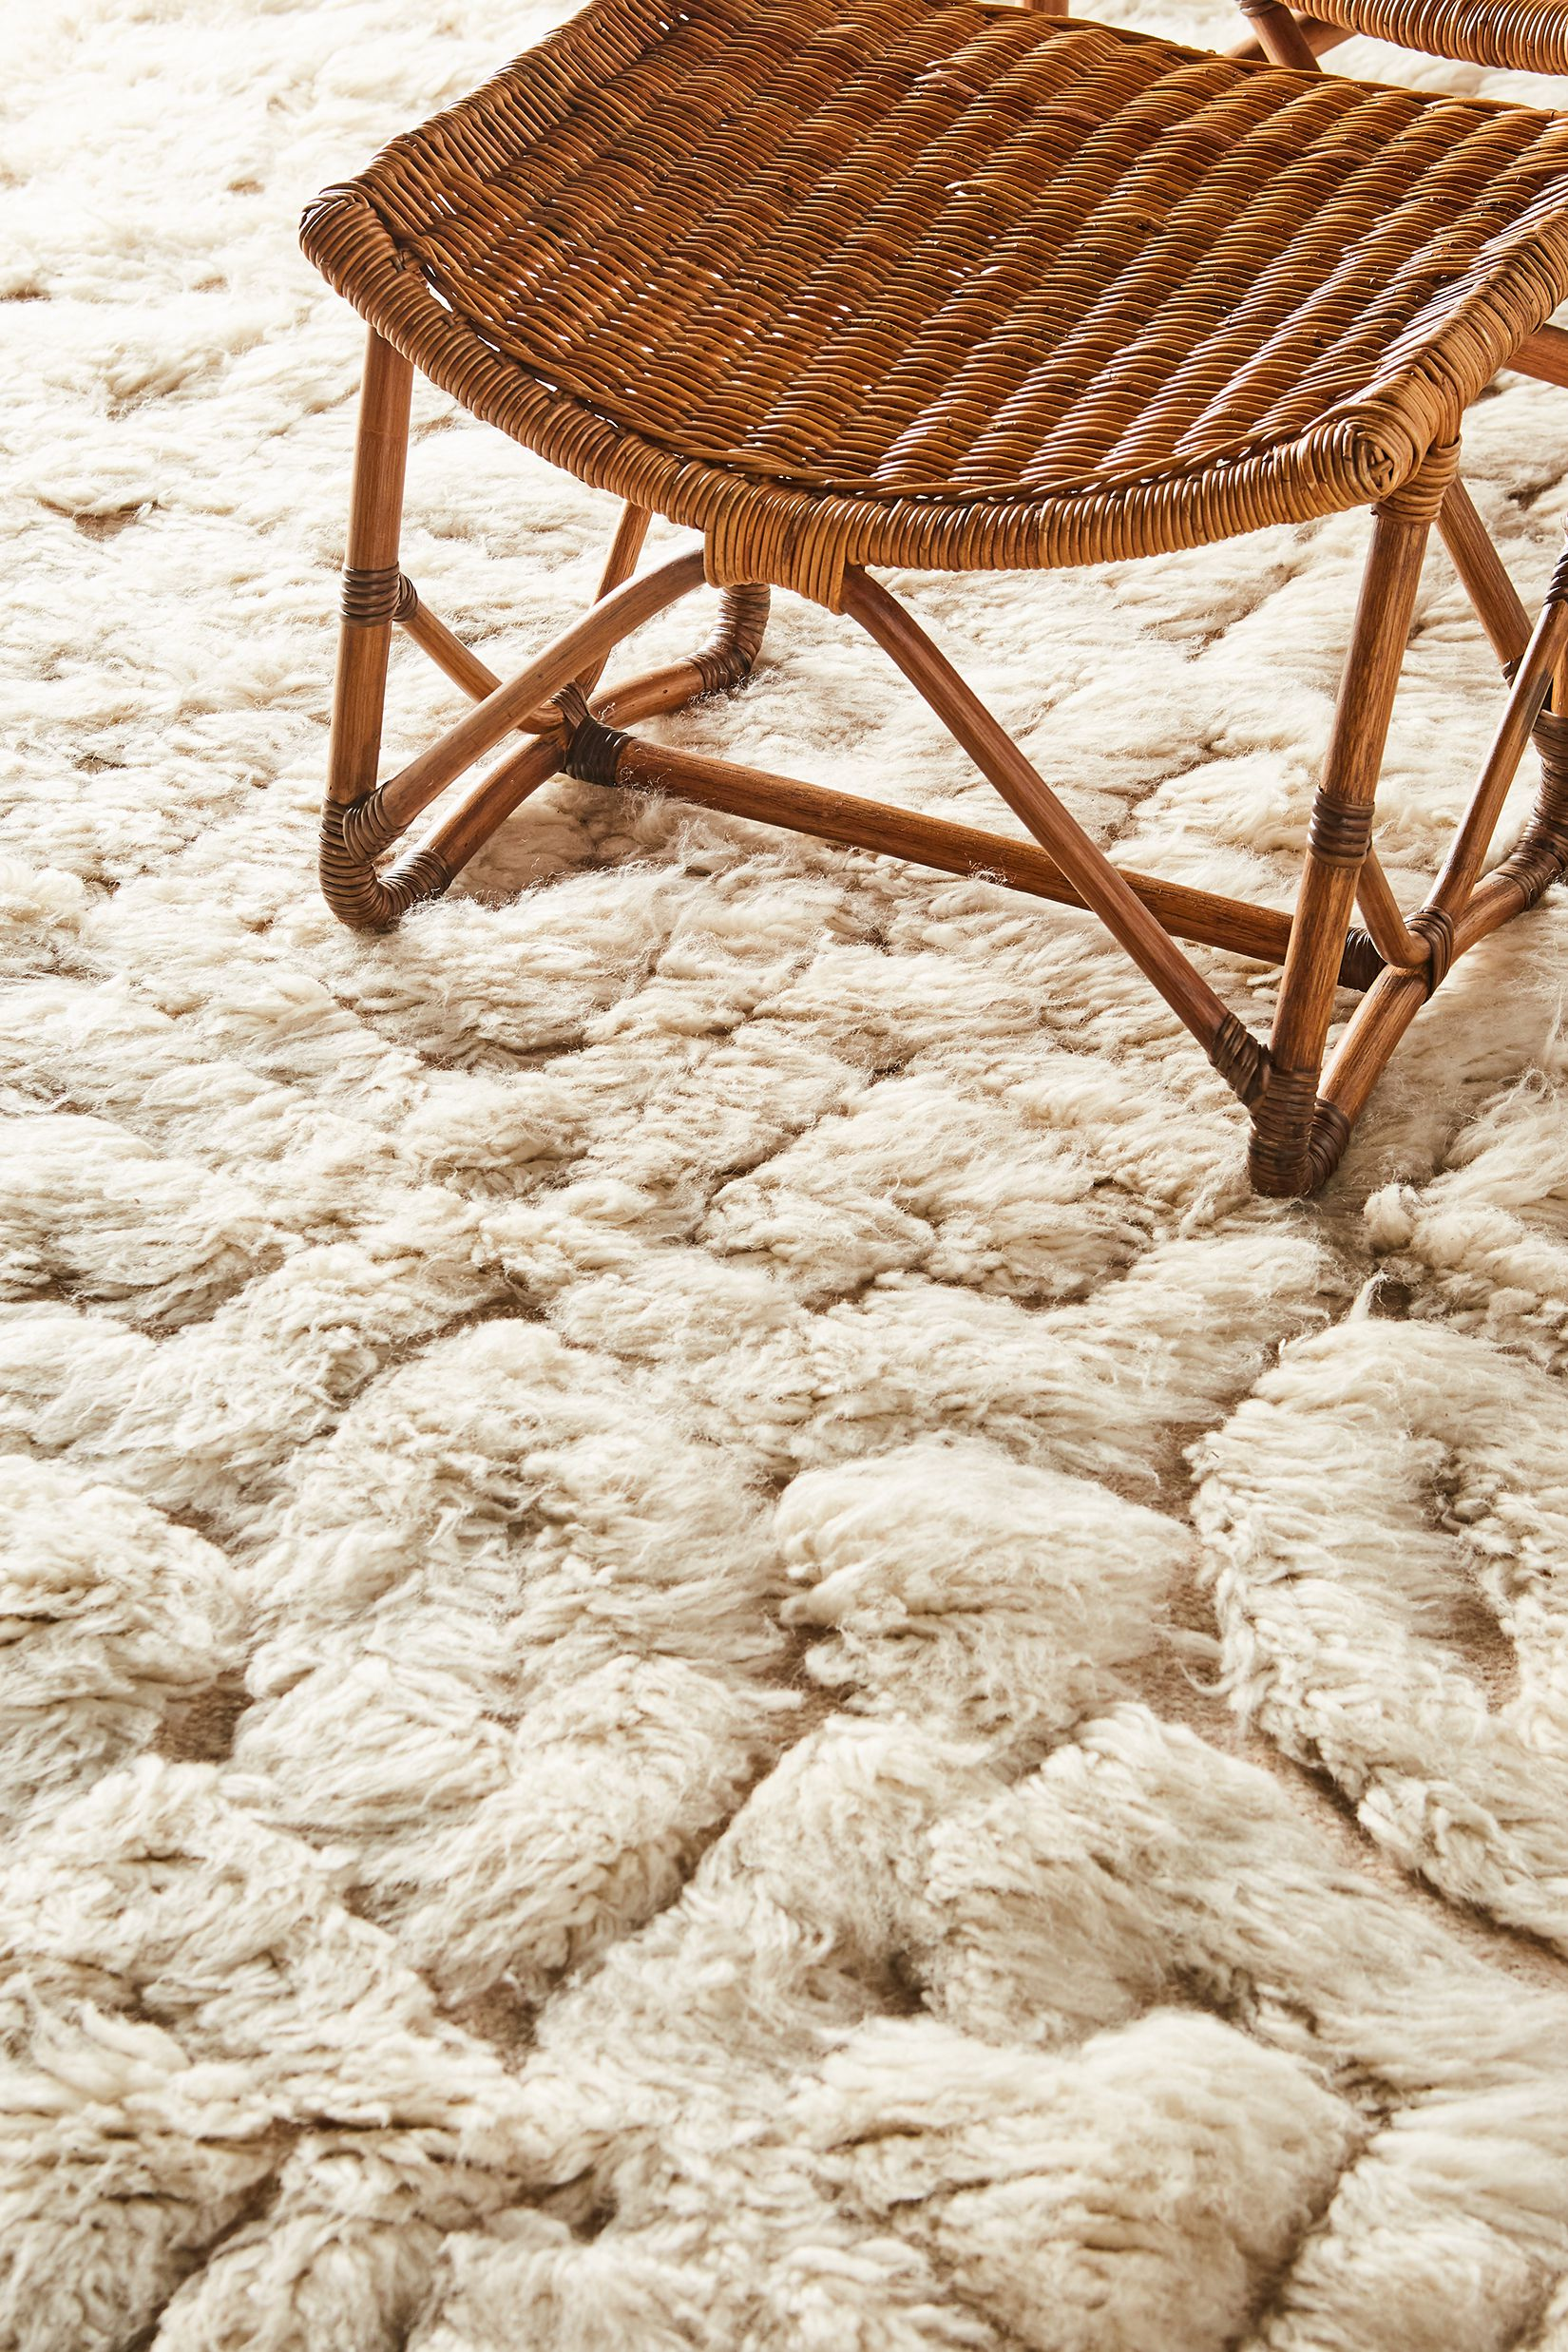 Hand-knotted Camille rug with chair